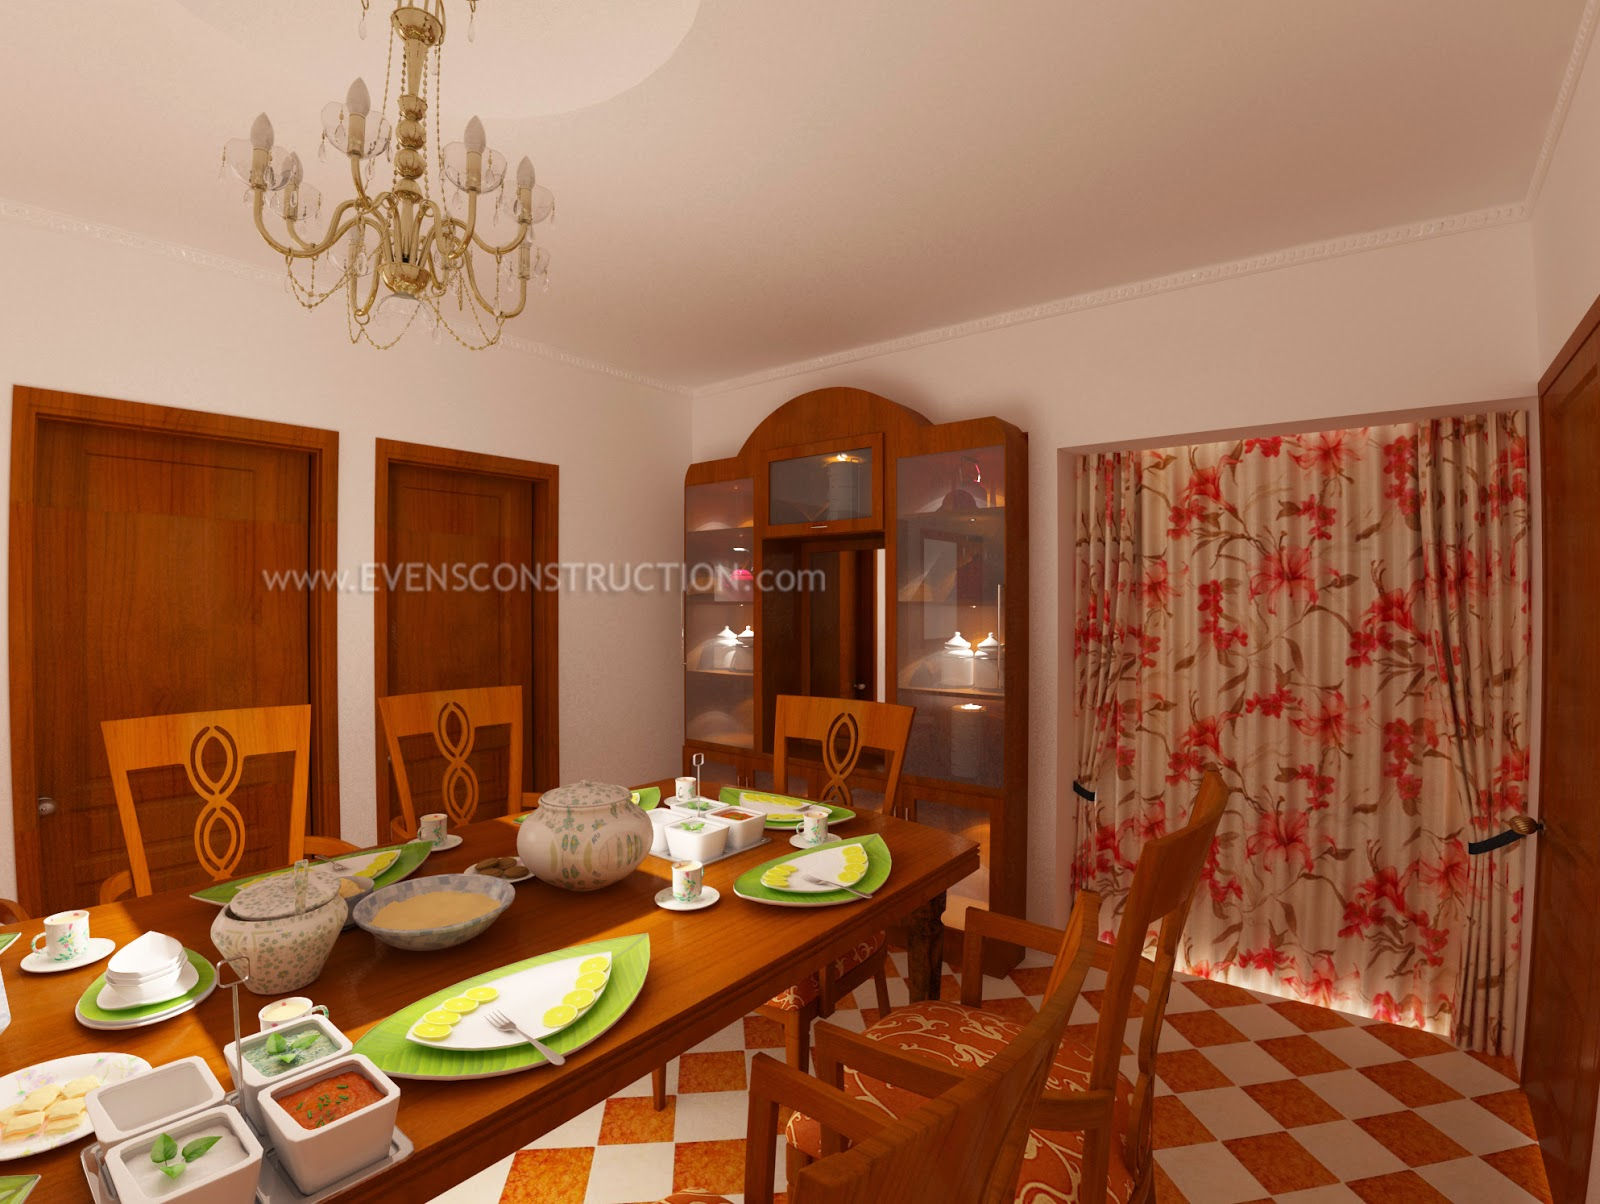 Evens Construction Pvt Ltd Dining Room